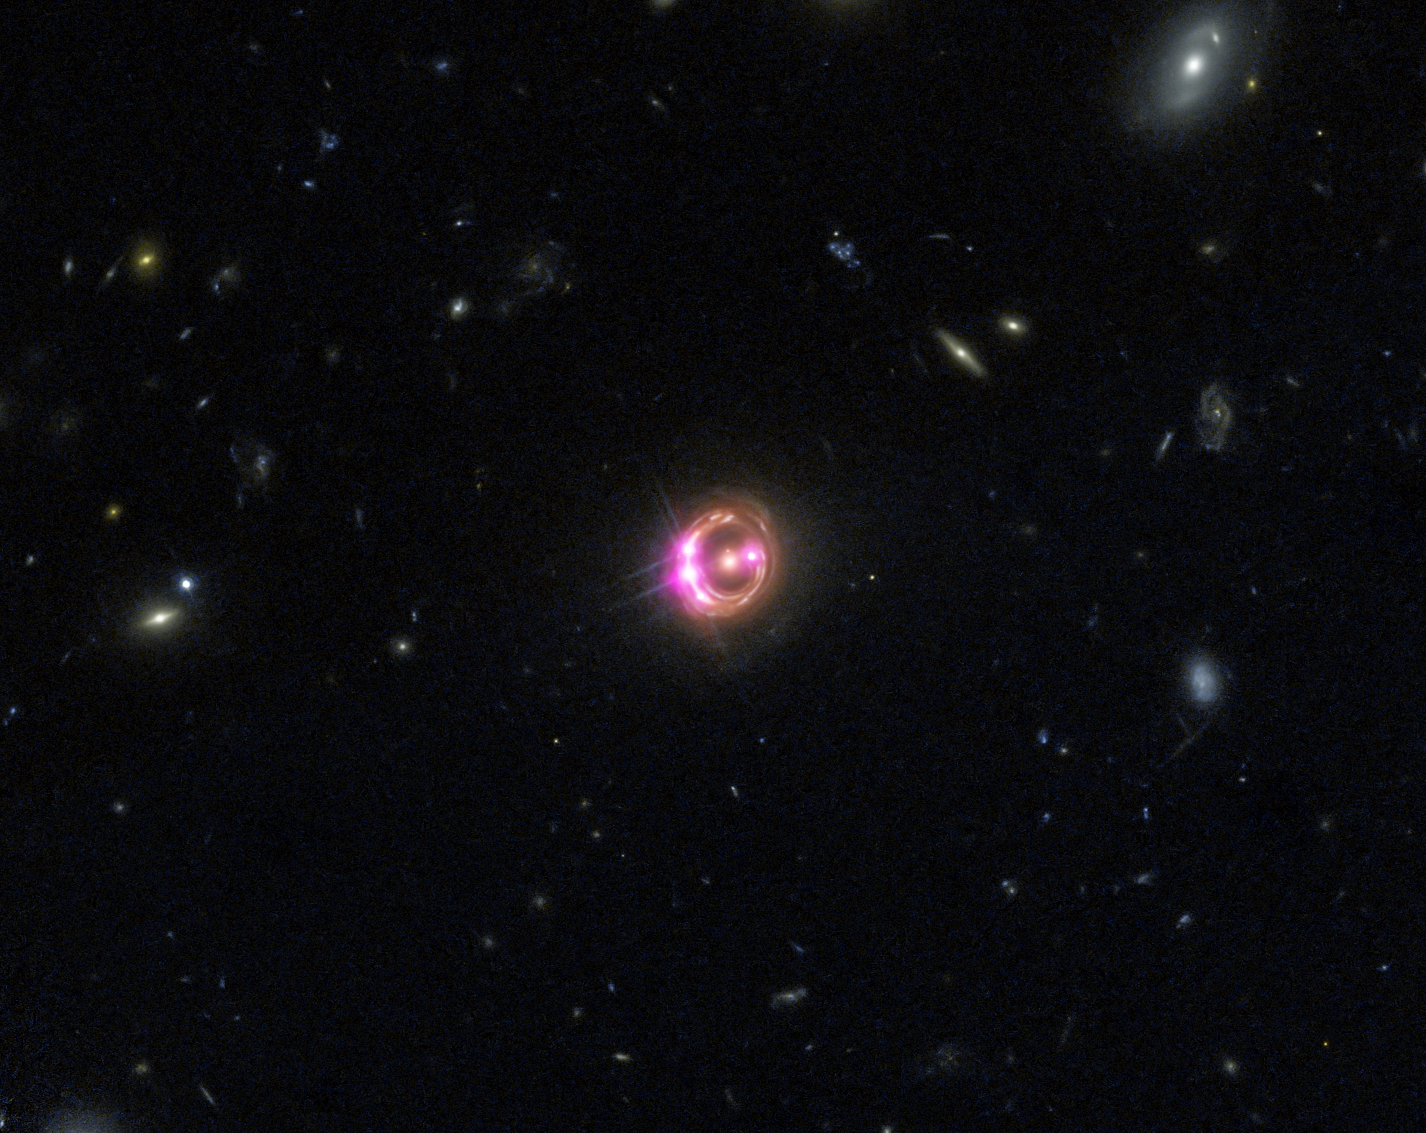 Multiple images of a distant quasar are visible in this combined view from NASA's Chandra X-ray Observatory and the Hubble Space Telescope. The Chandra data were used to directly measure the spin of the supermassive black hole powering this quasar. Credit: X-ray: NASA/CXC/Univ of Michigan/R.C.Reis et al; Optical: NASA/STScI